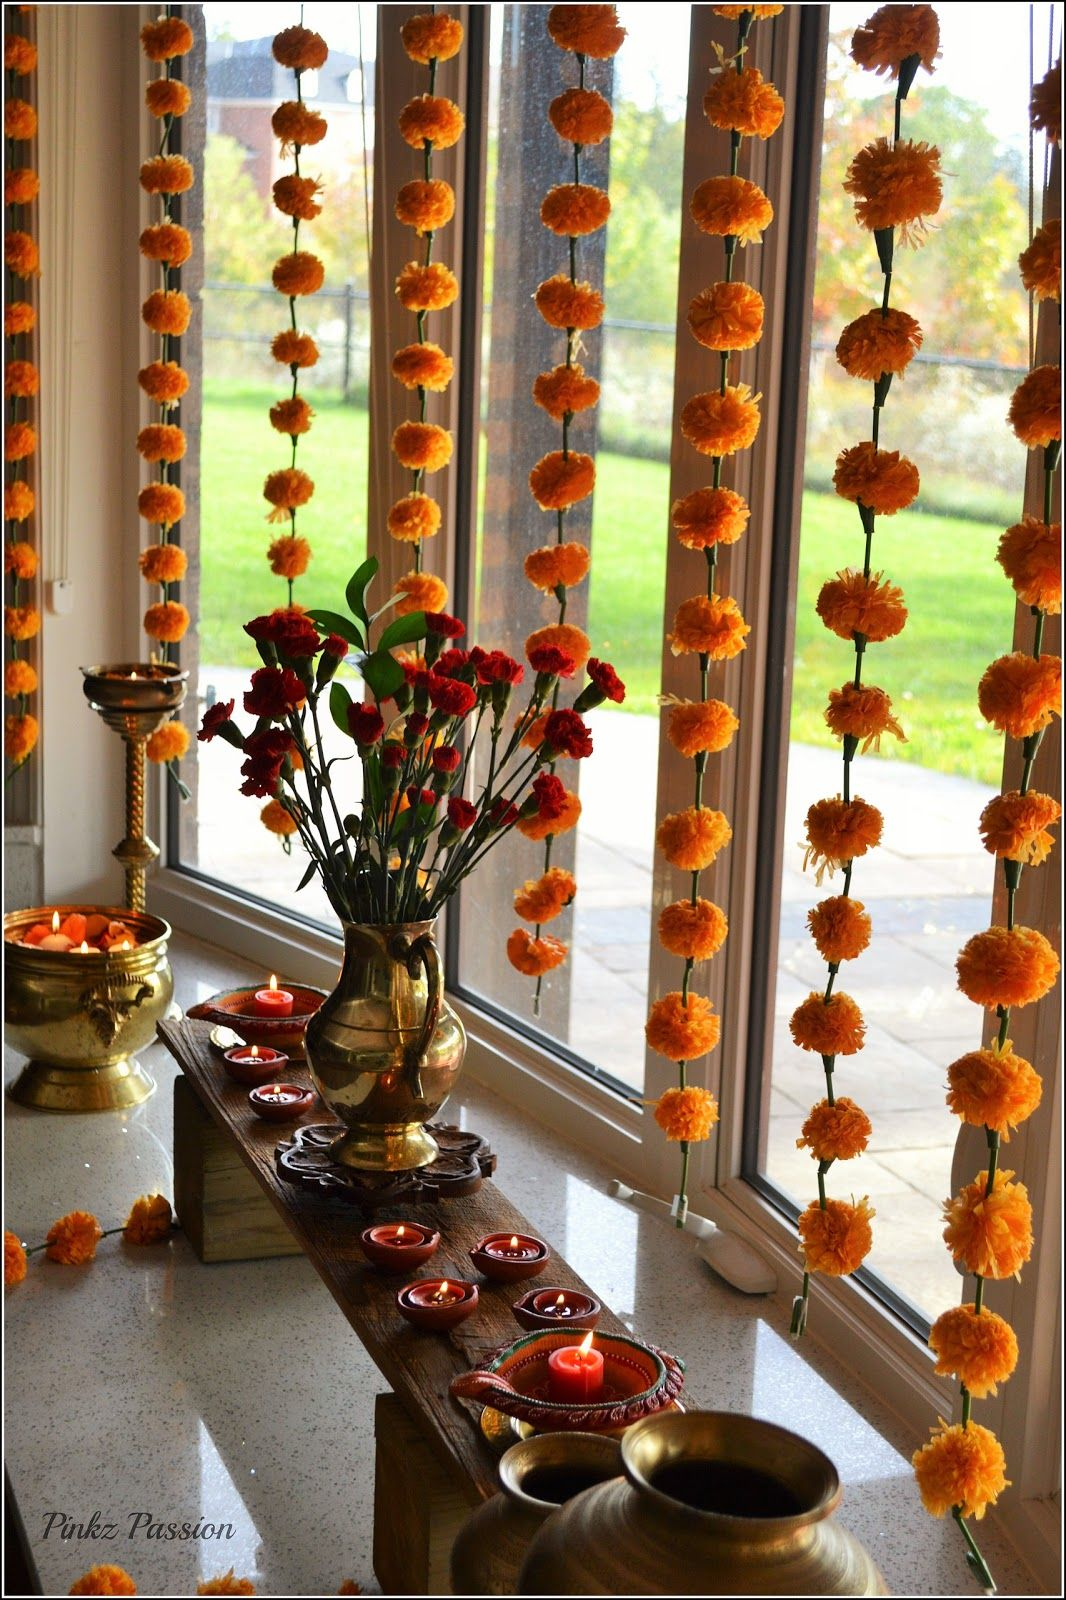 diwali party entwined with south indian theme projects to try indian home decor indian. Black Bedroom Furniture Sets. Home Design Ideas